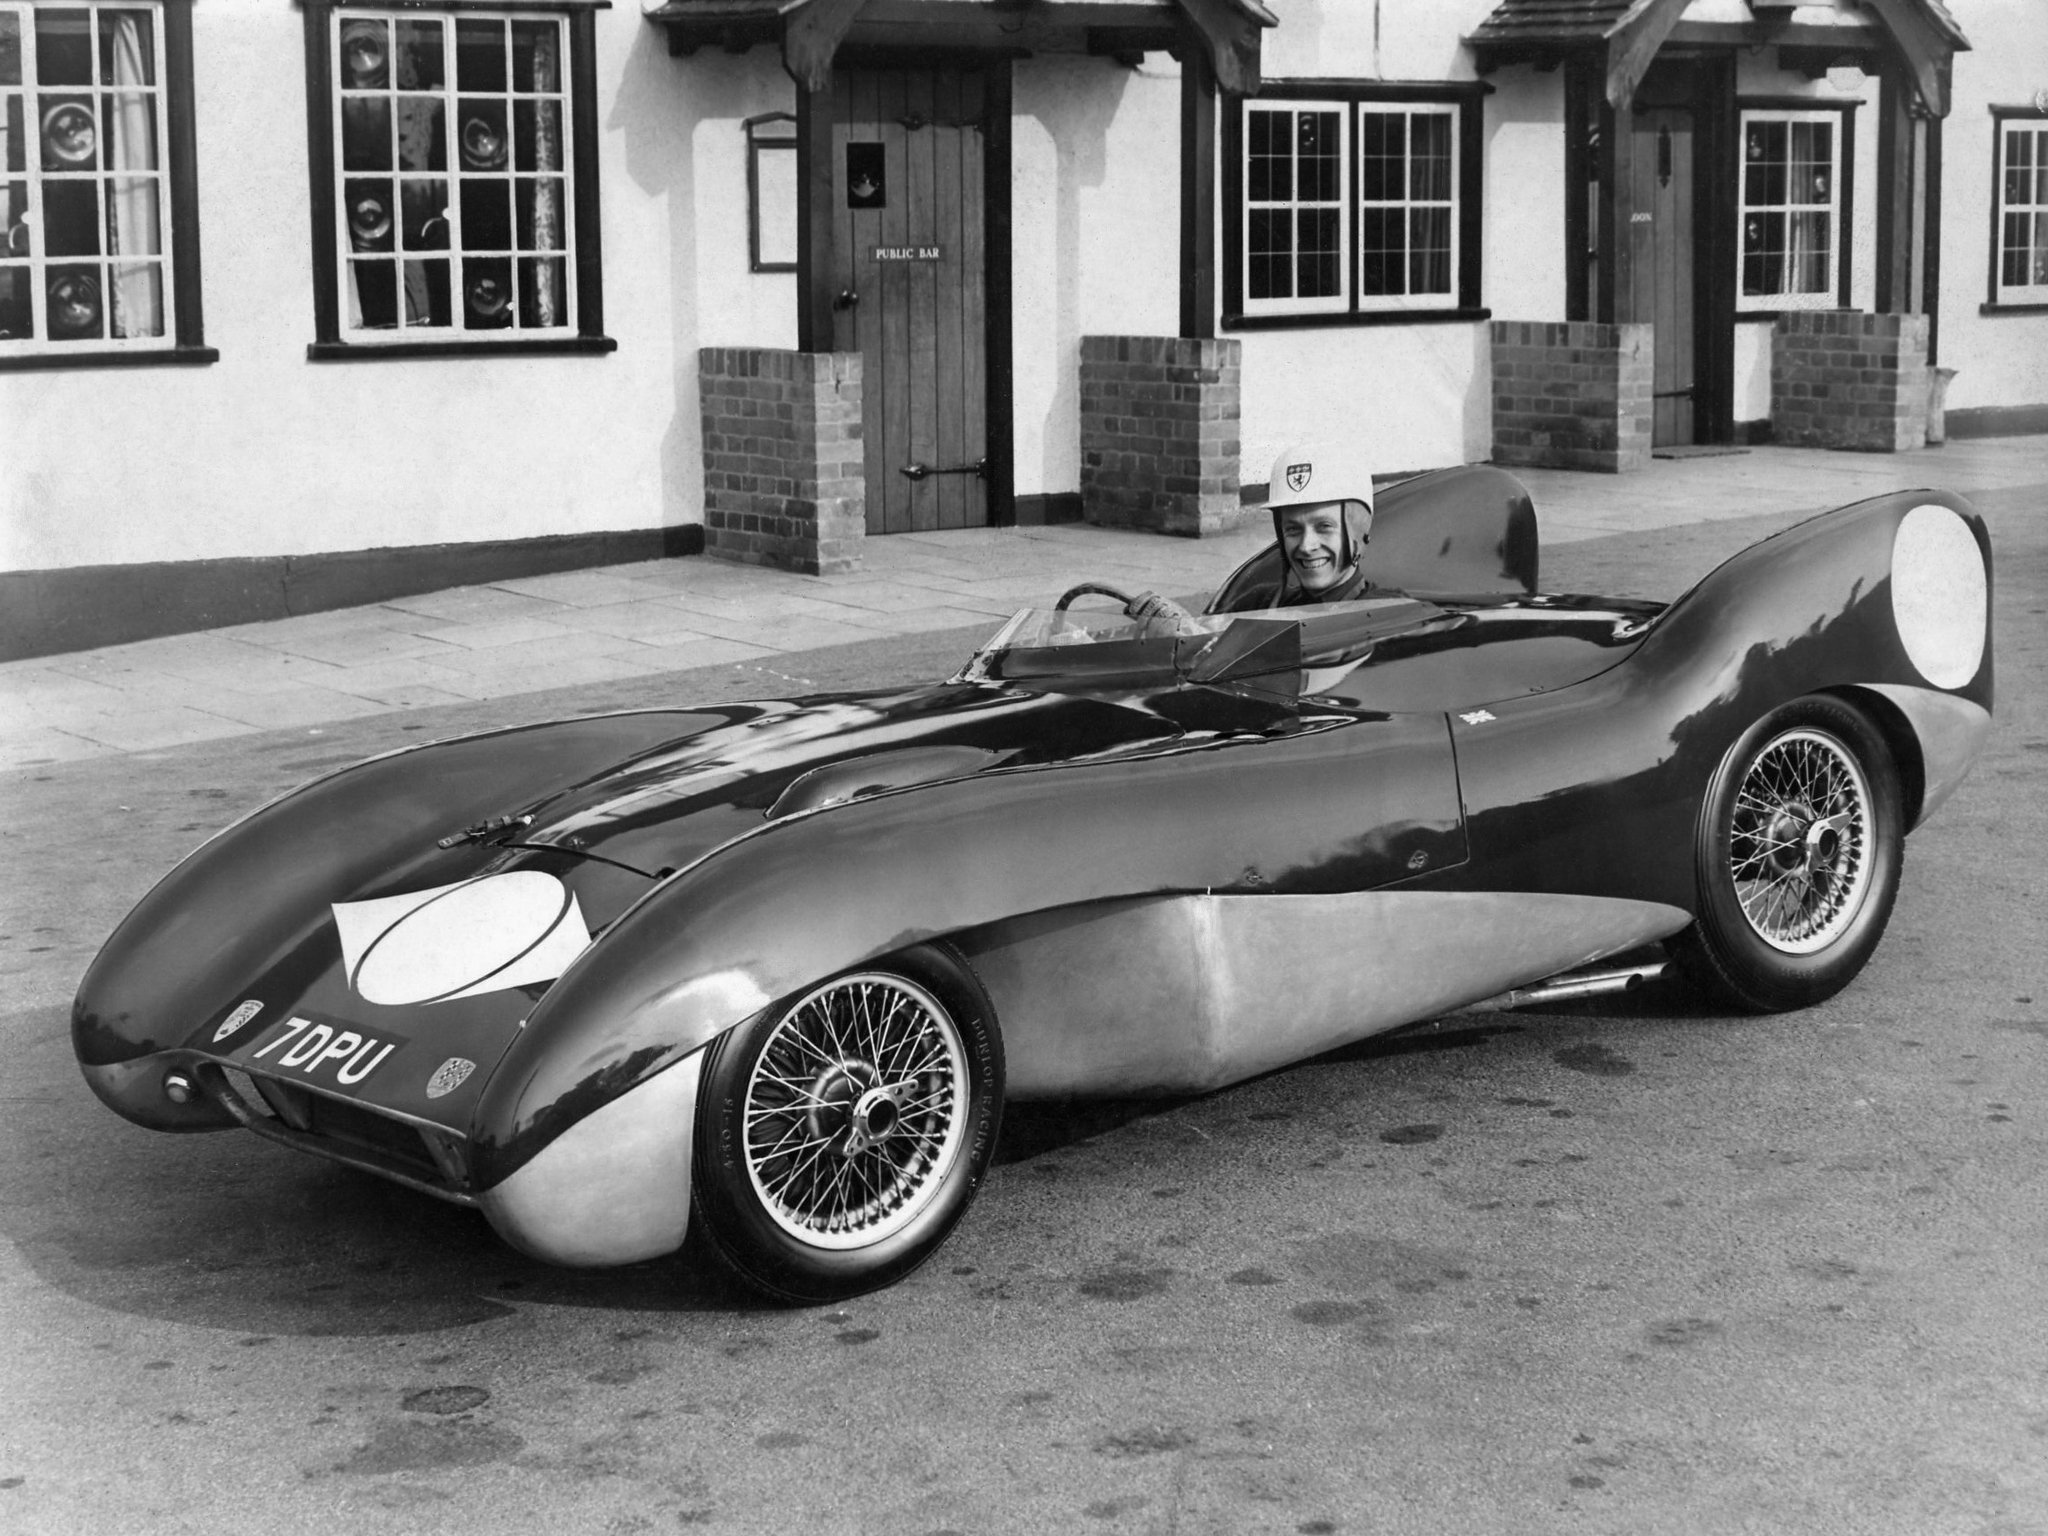 1954_Lotus_Mark_IX_race_racing_retro_____t_2048x1536.jpg